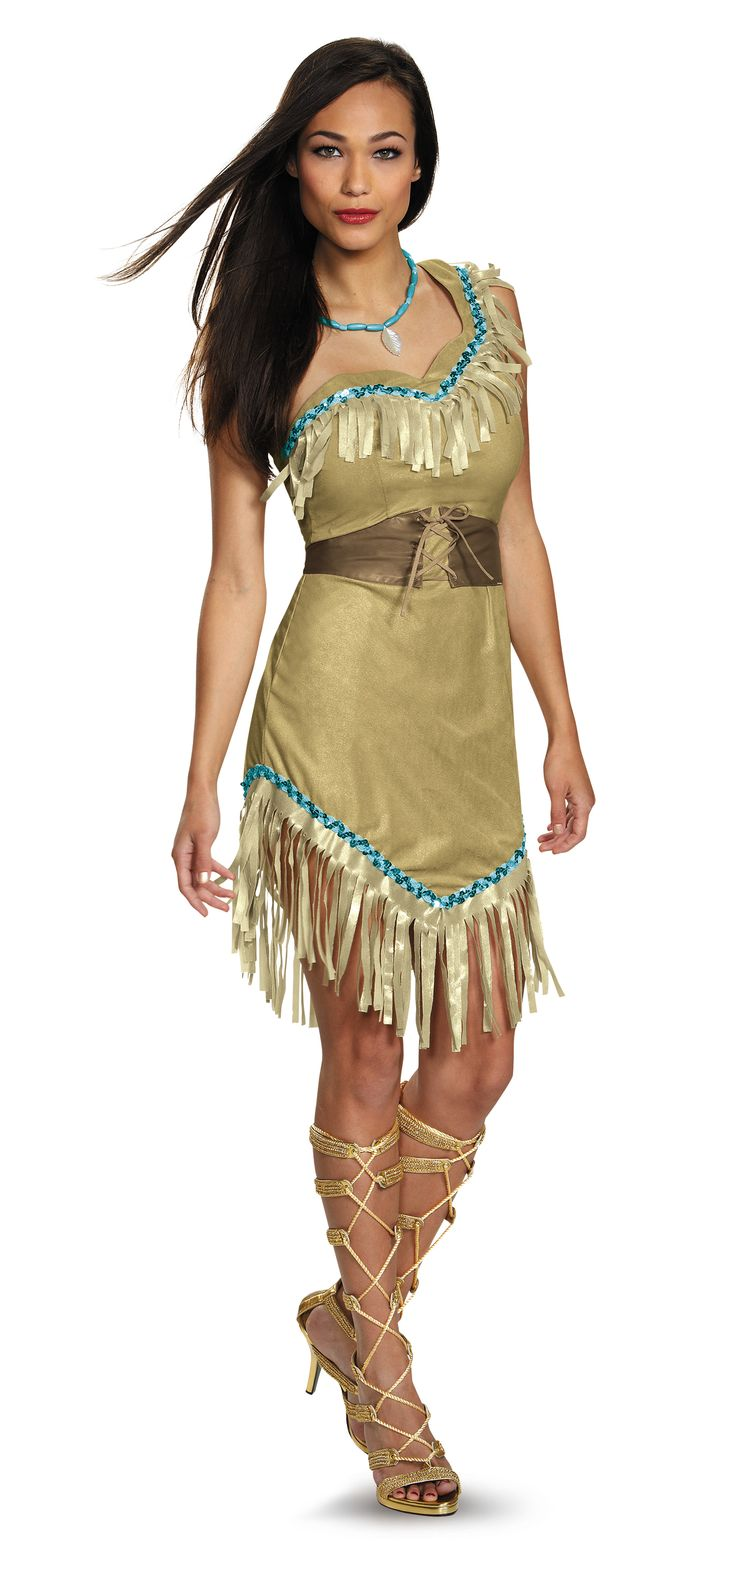 Nice Costumes Disney Princess Pocahontas Deluxe Adult Costume just added...